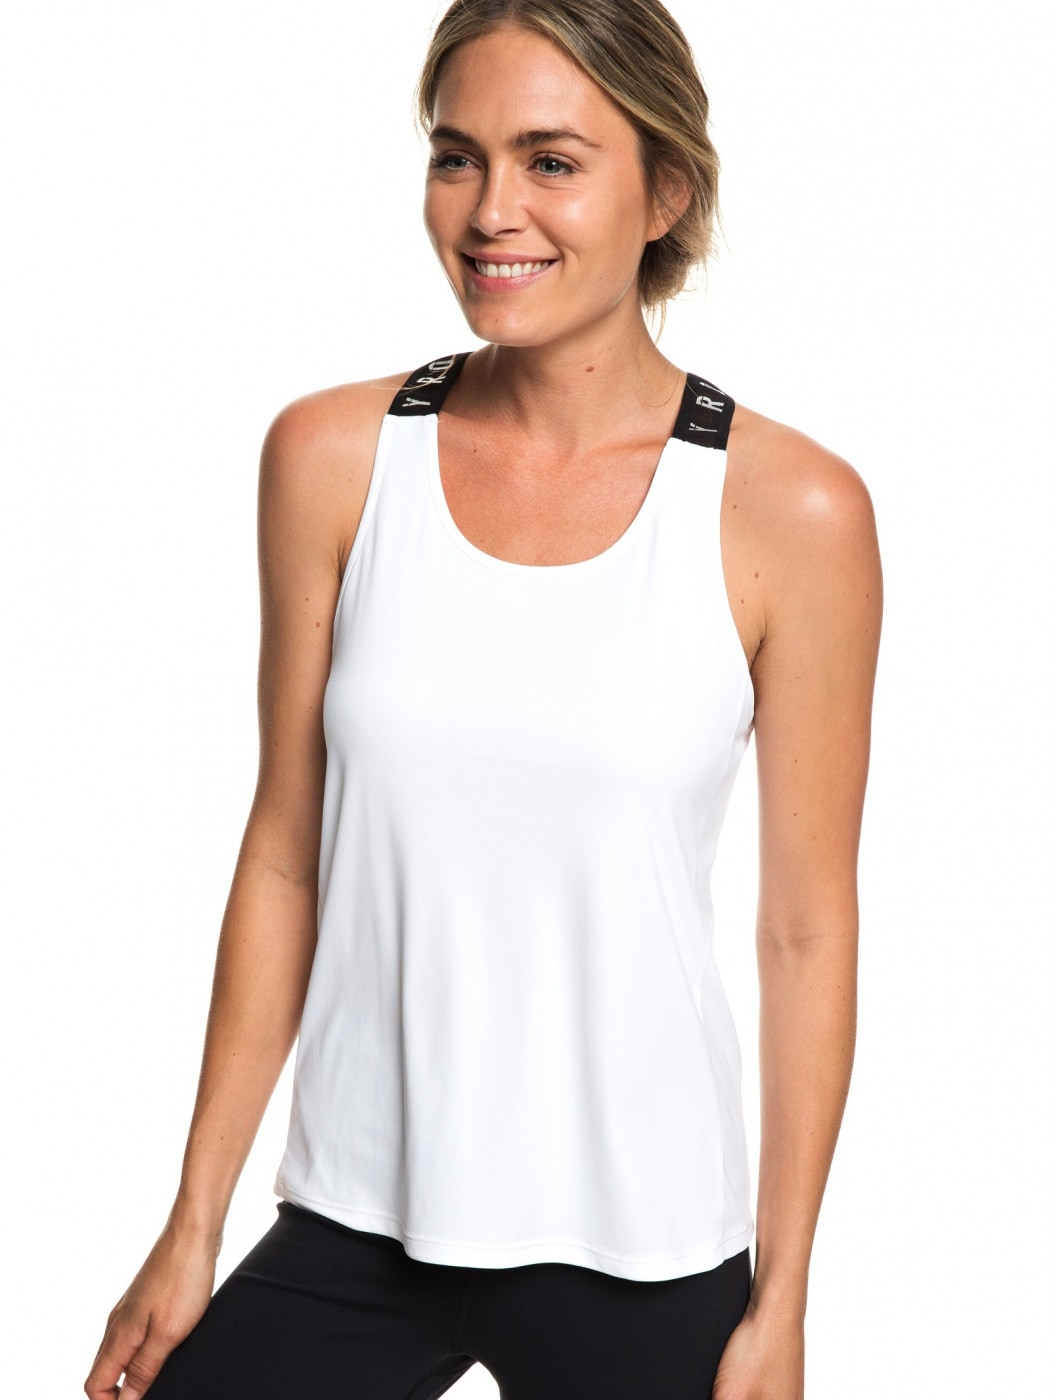 Women's tank-top ROXY LETS GLOW TANK J KTTP